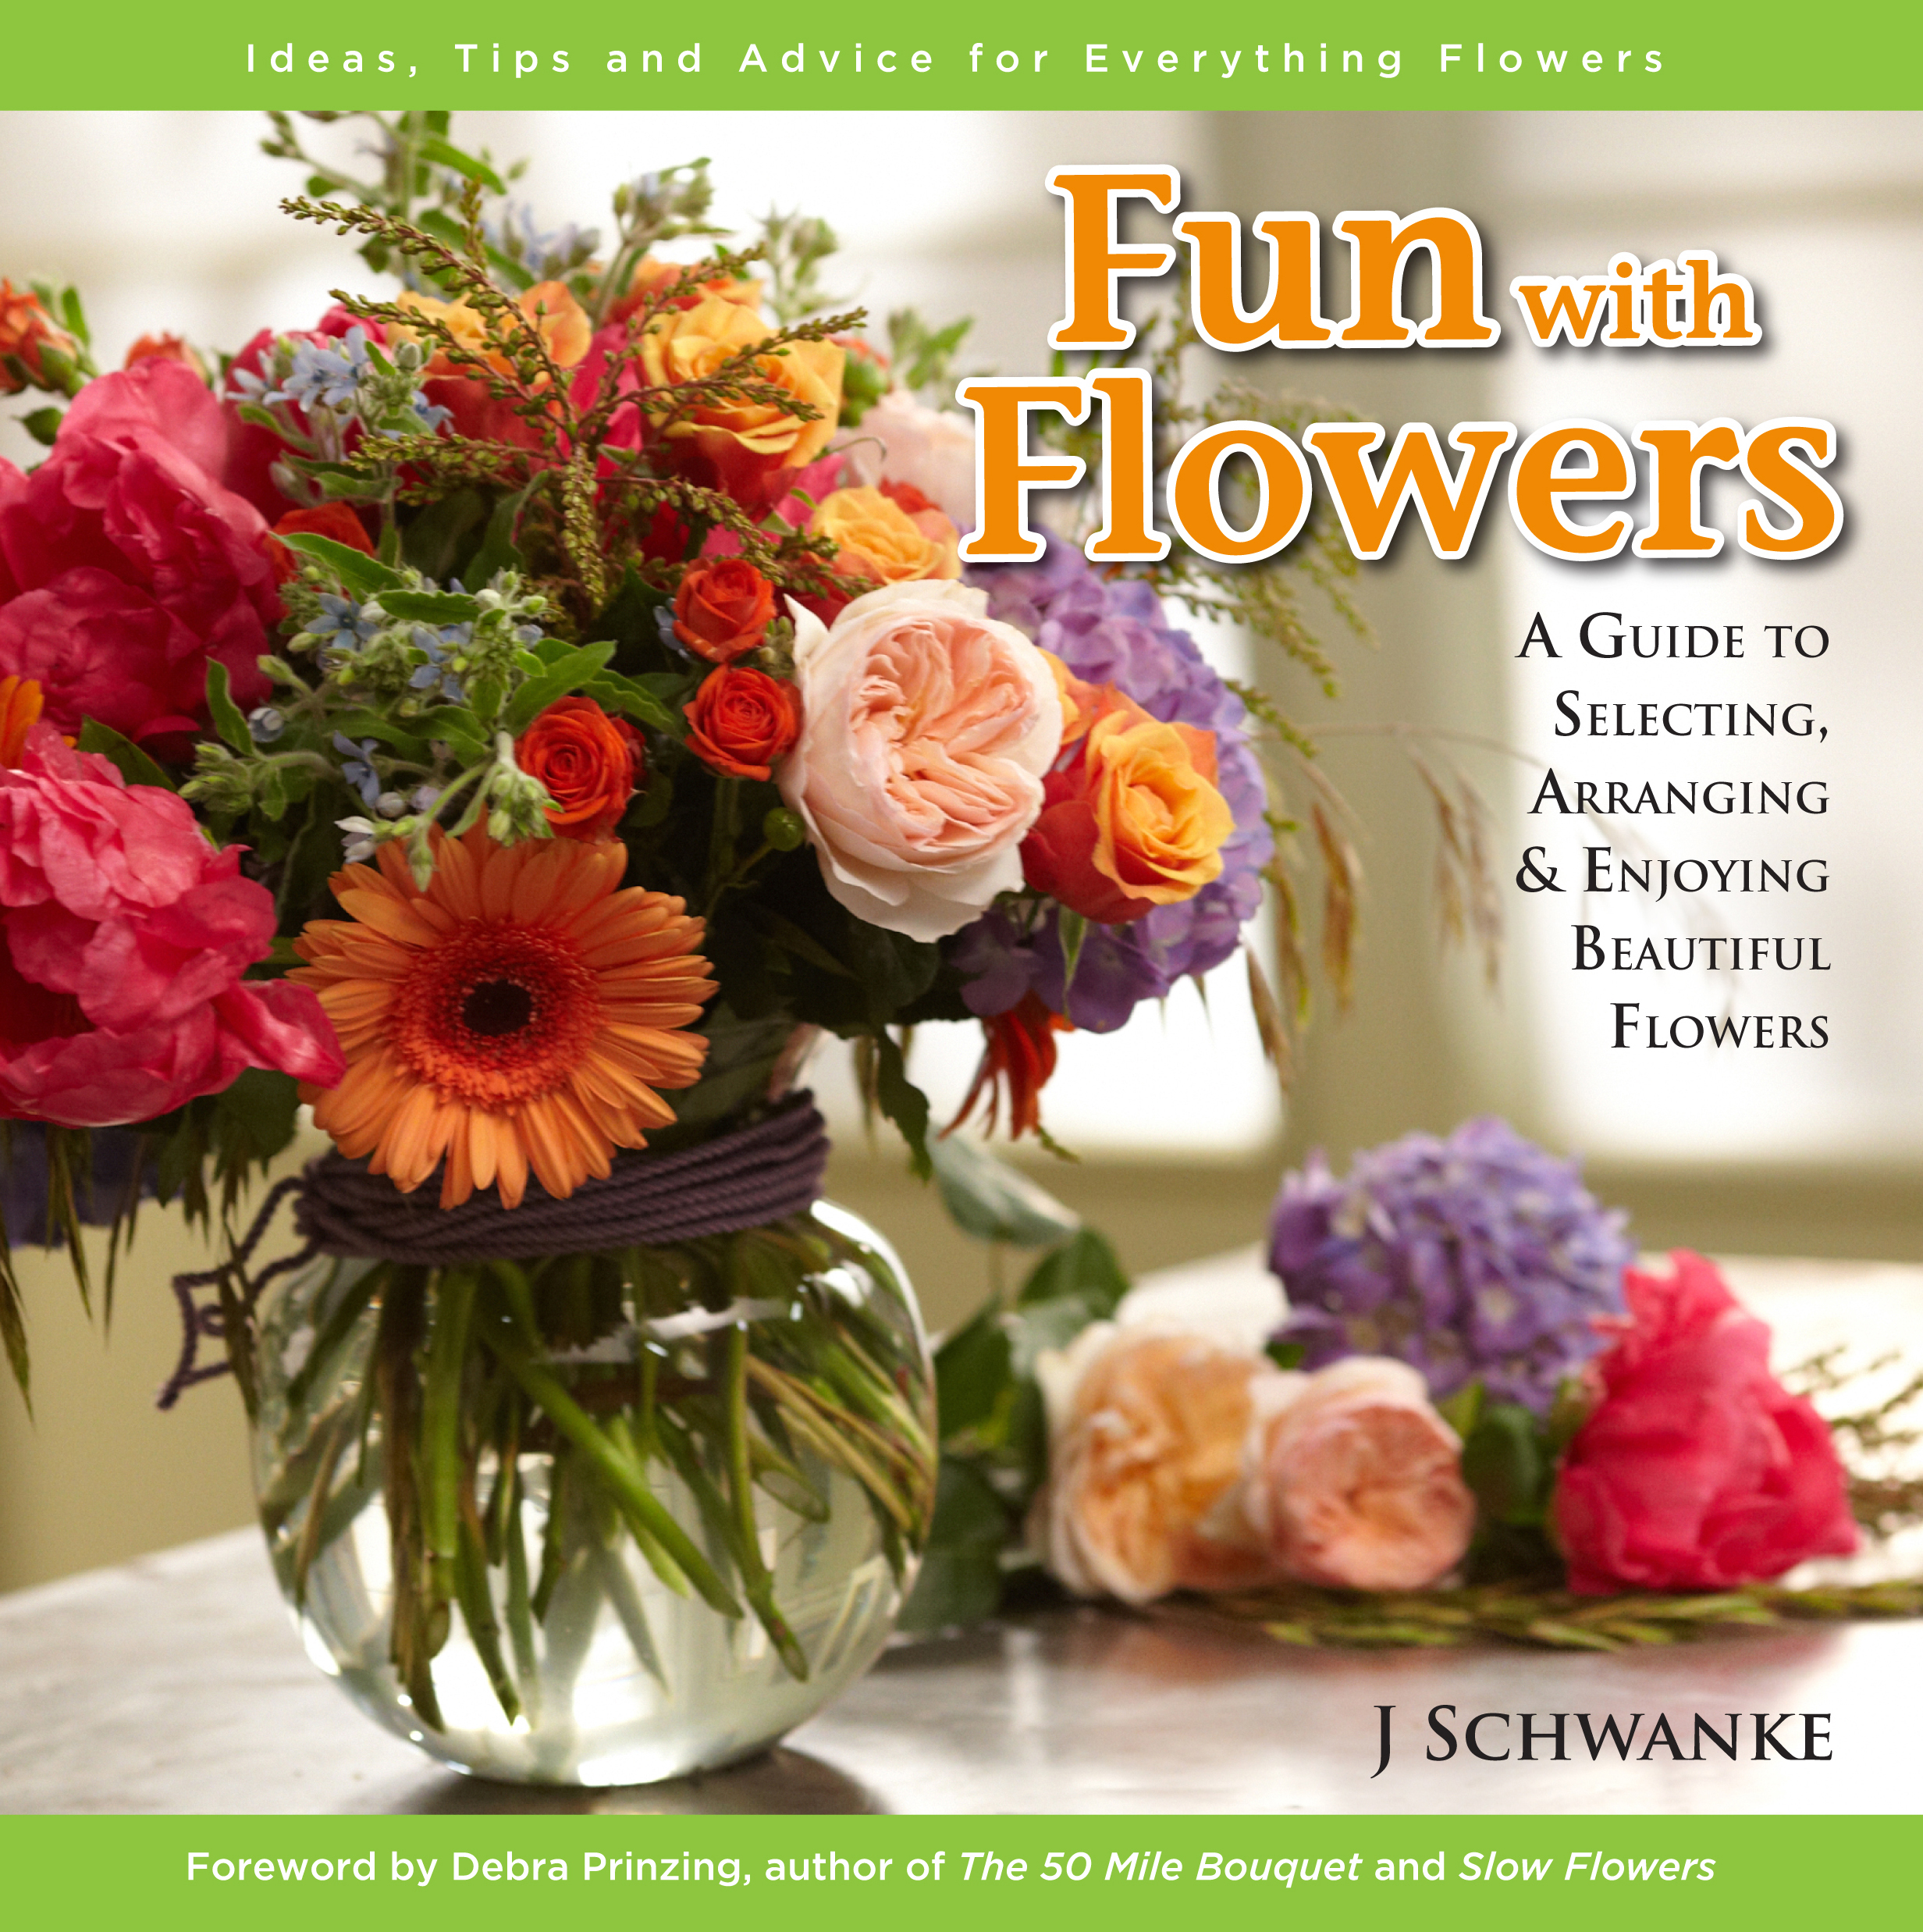 Fun With Flowers by J Schwanke